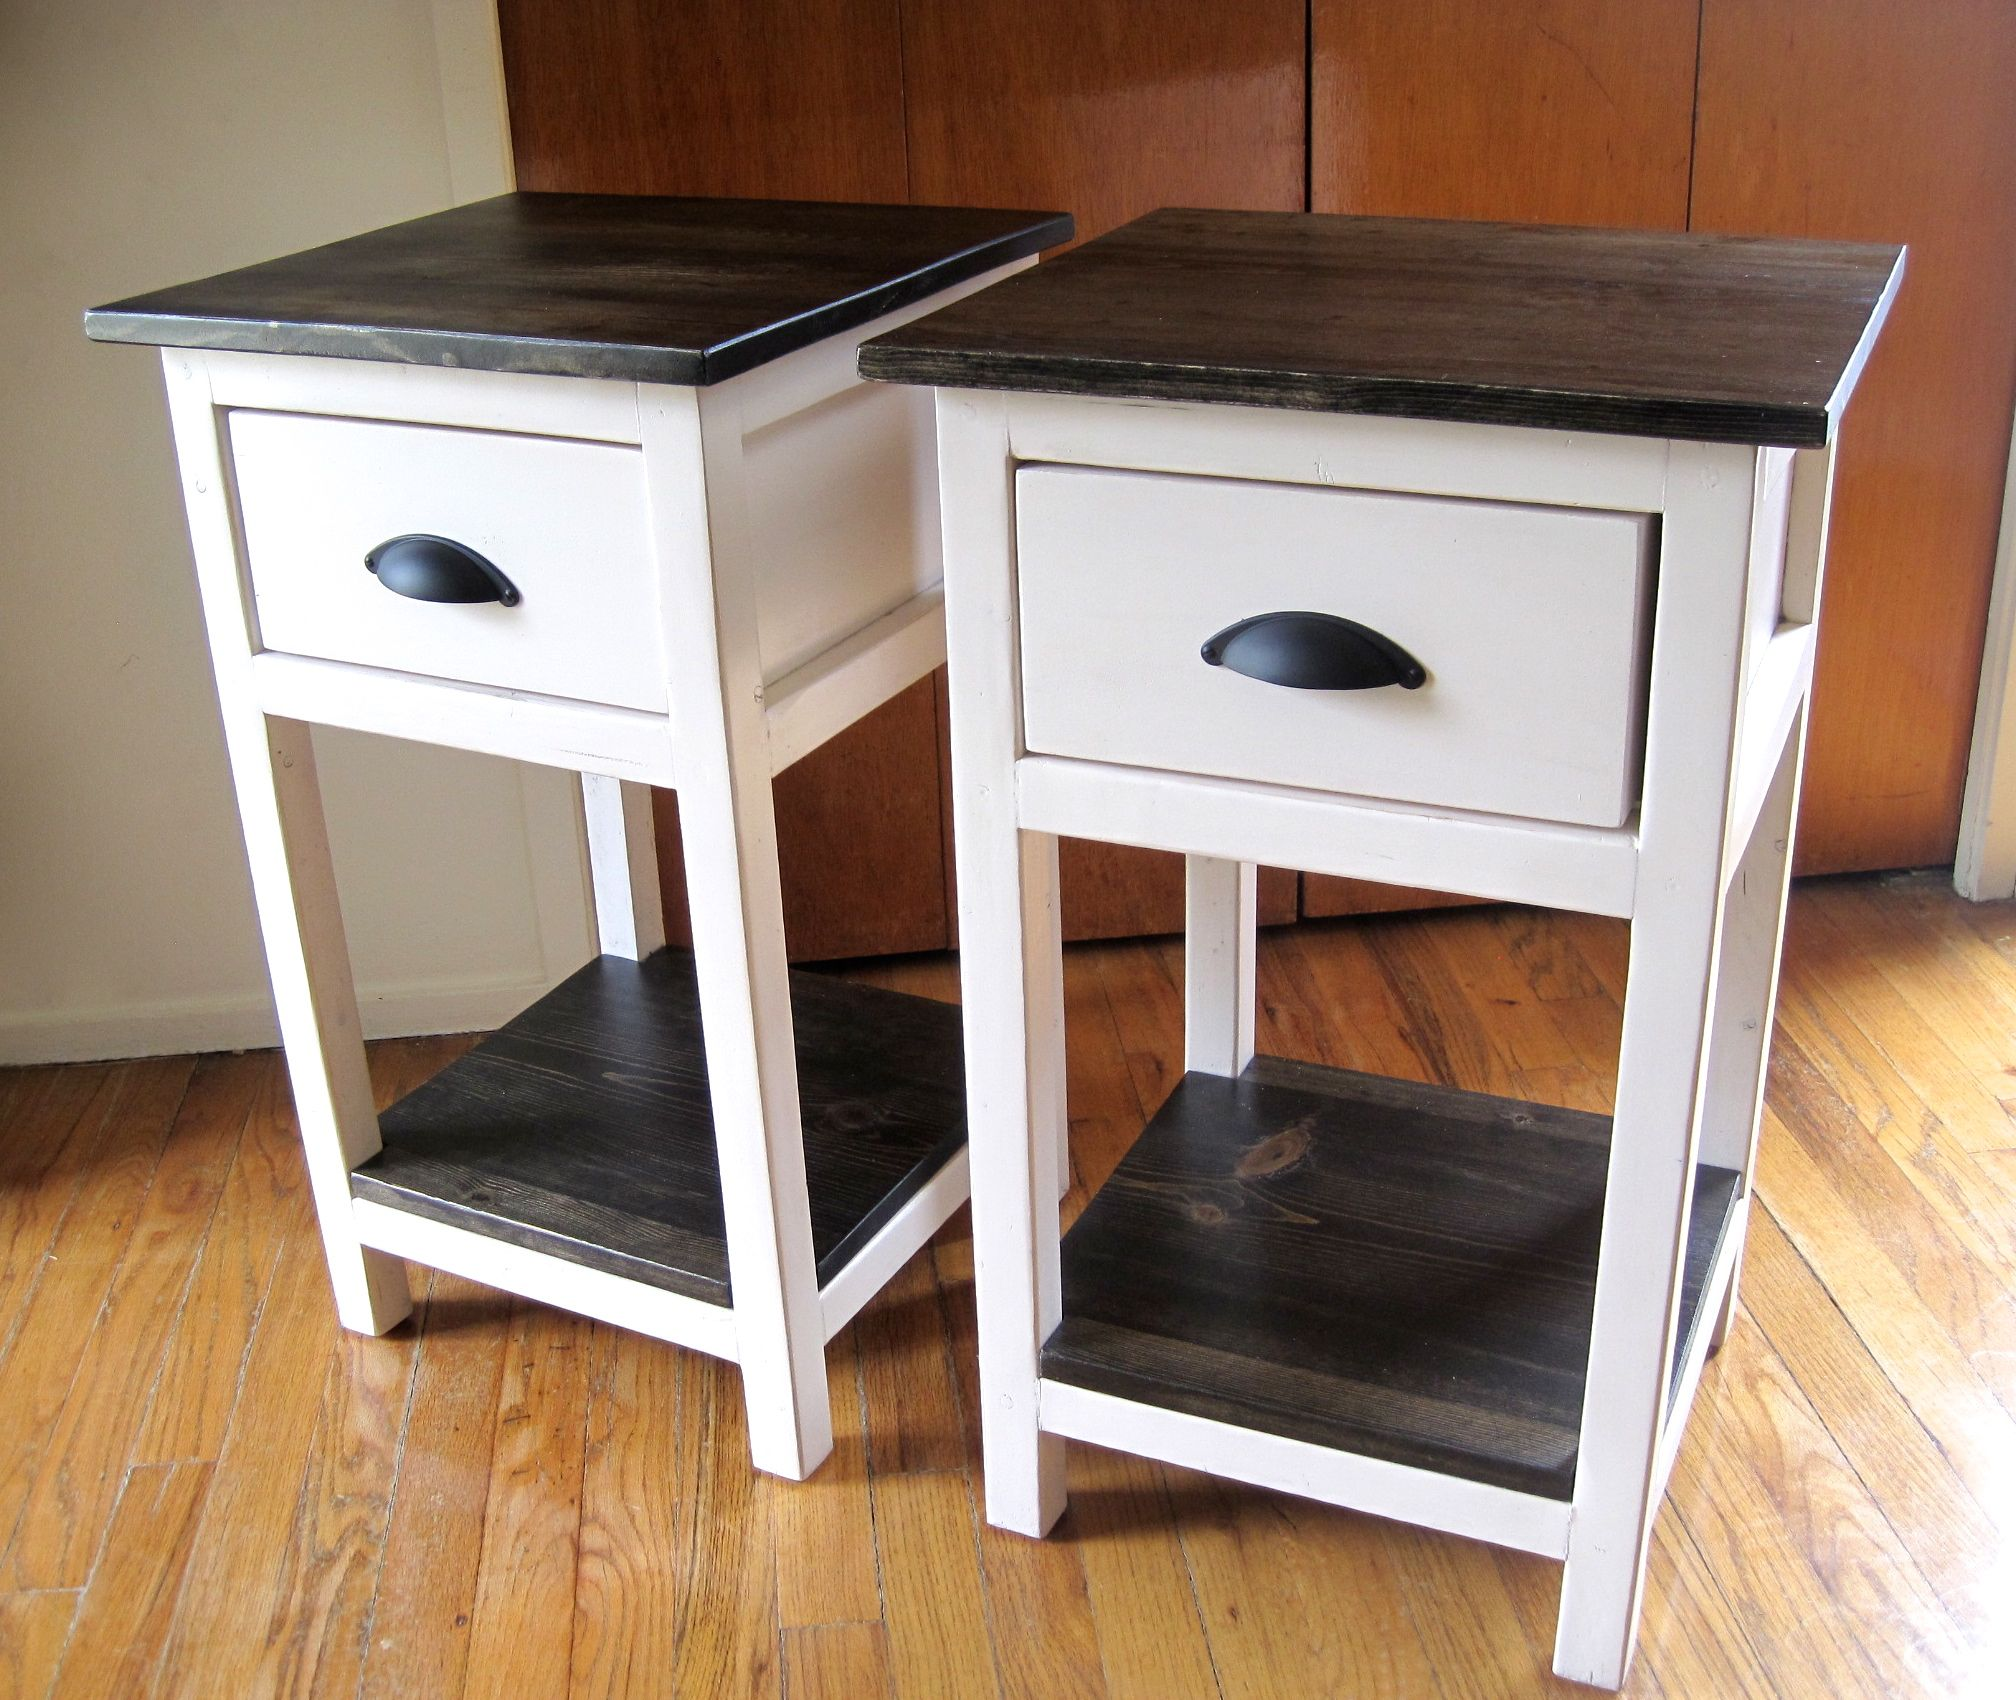 Ana white build a mini farmhouse bedside table plans for Side table design